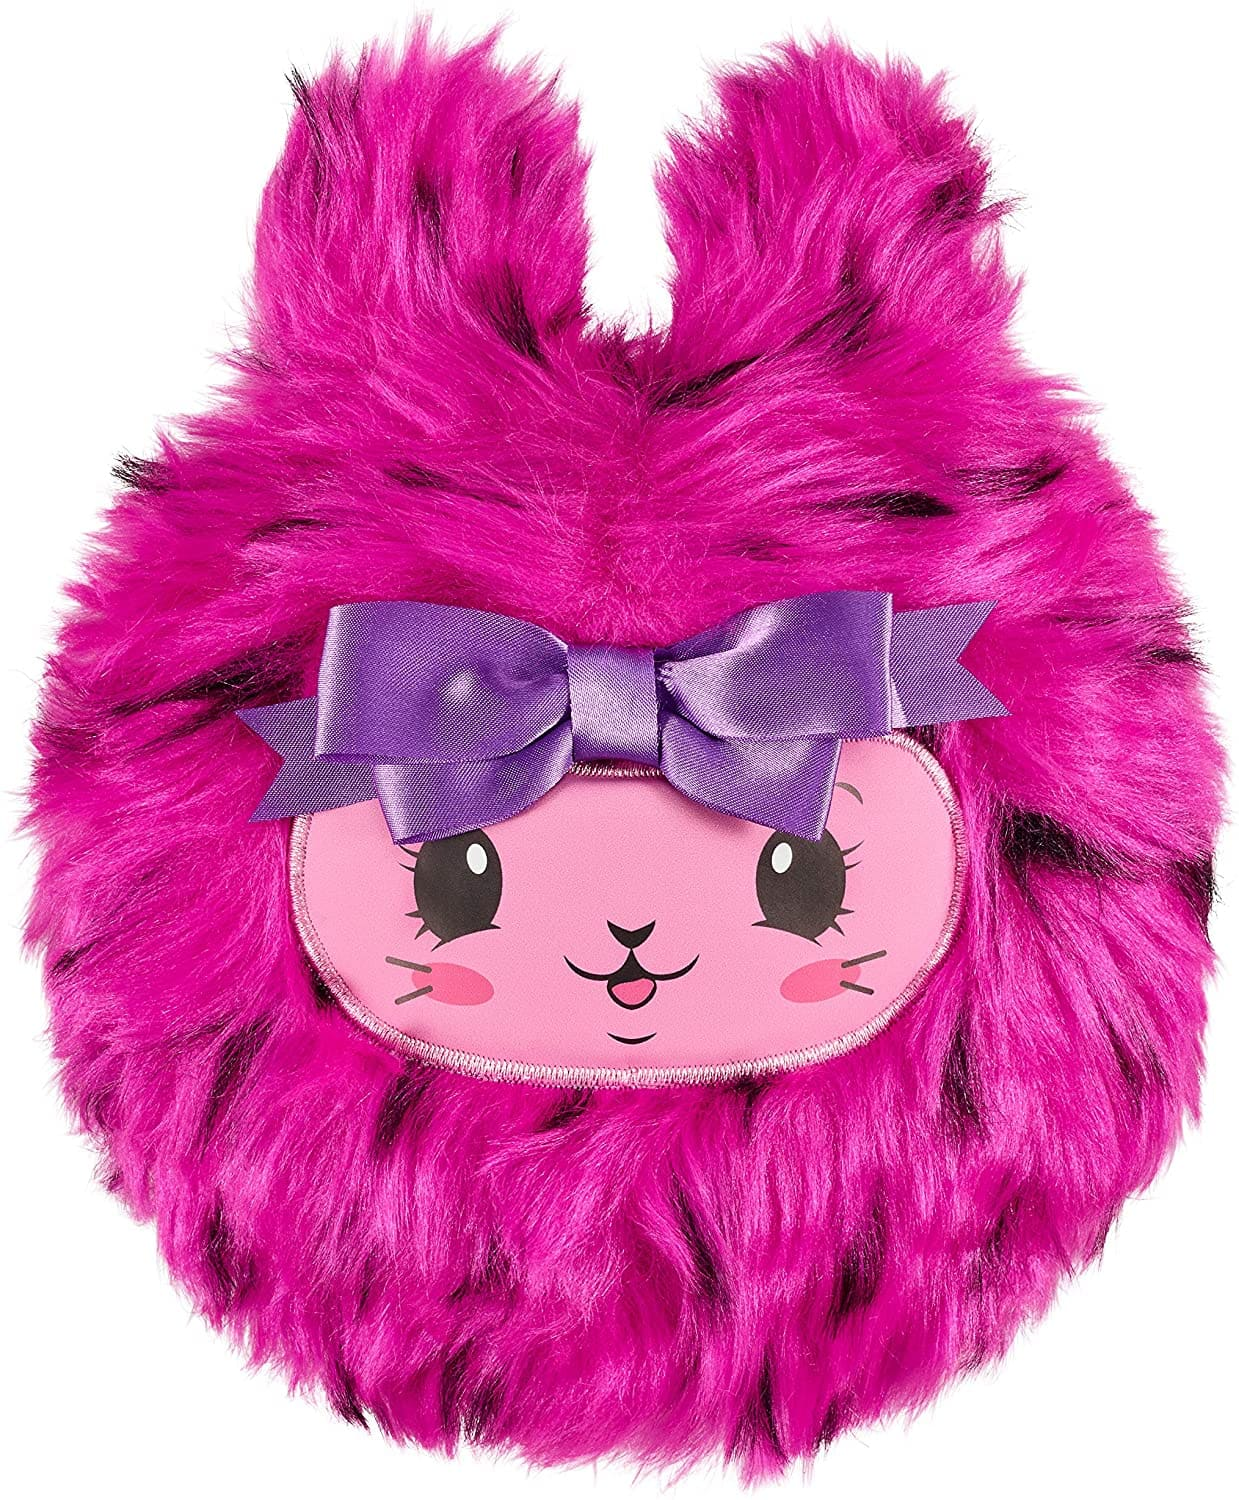 "7"" Pikmi Pops Cheeki Puffs Collectible Scented Shimmer Plush Toy (Fuzzin The Bunny) $7.30 + Free Shipping w/ Amazon Prime or Orders $25+"